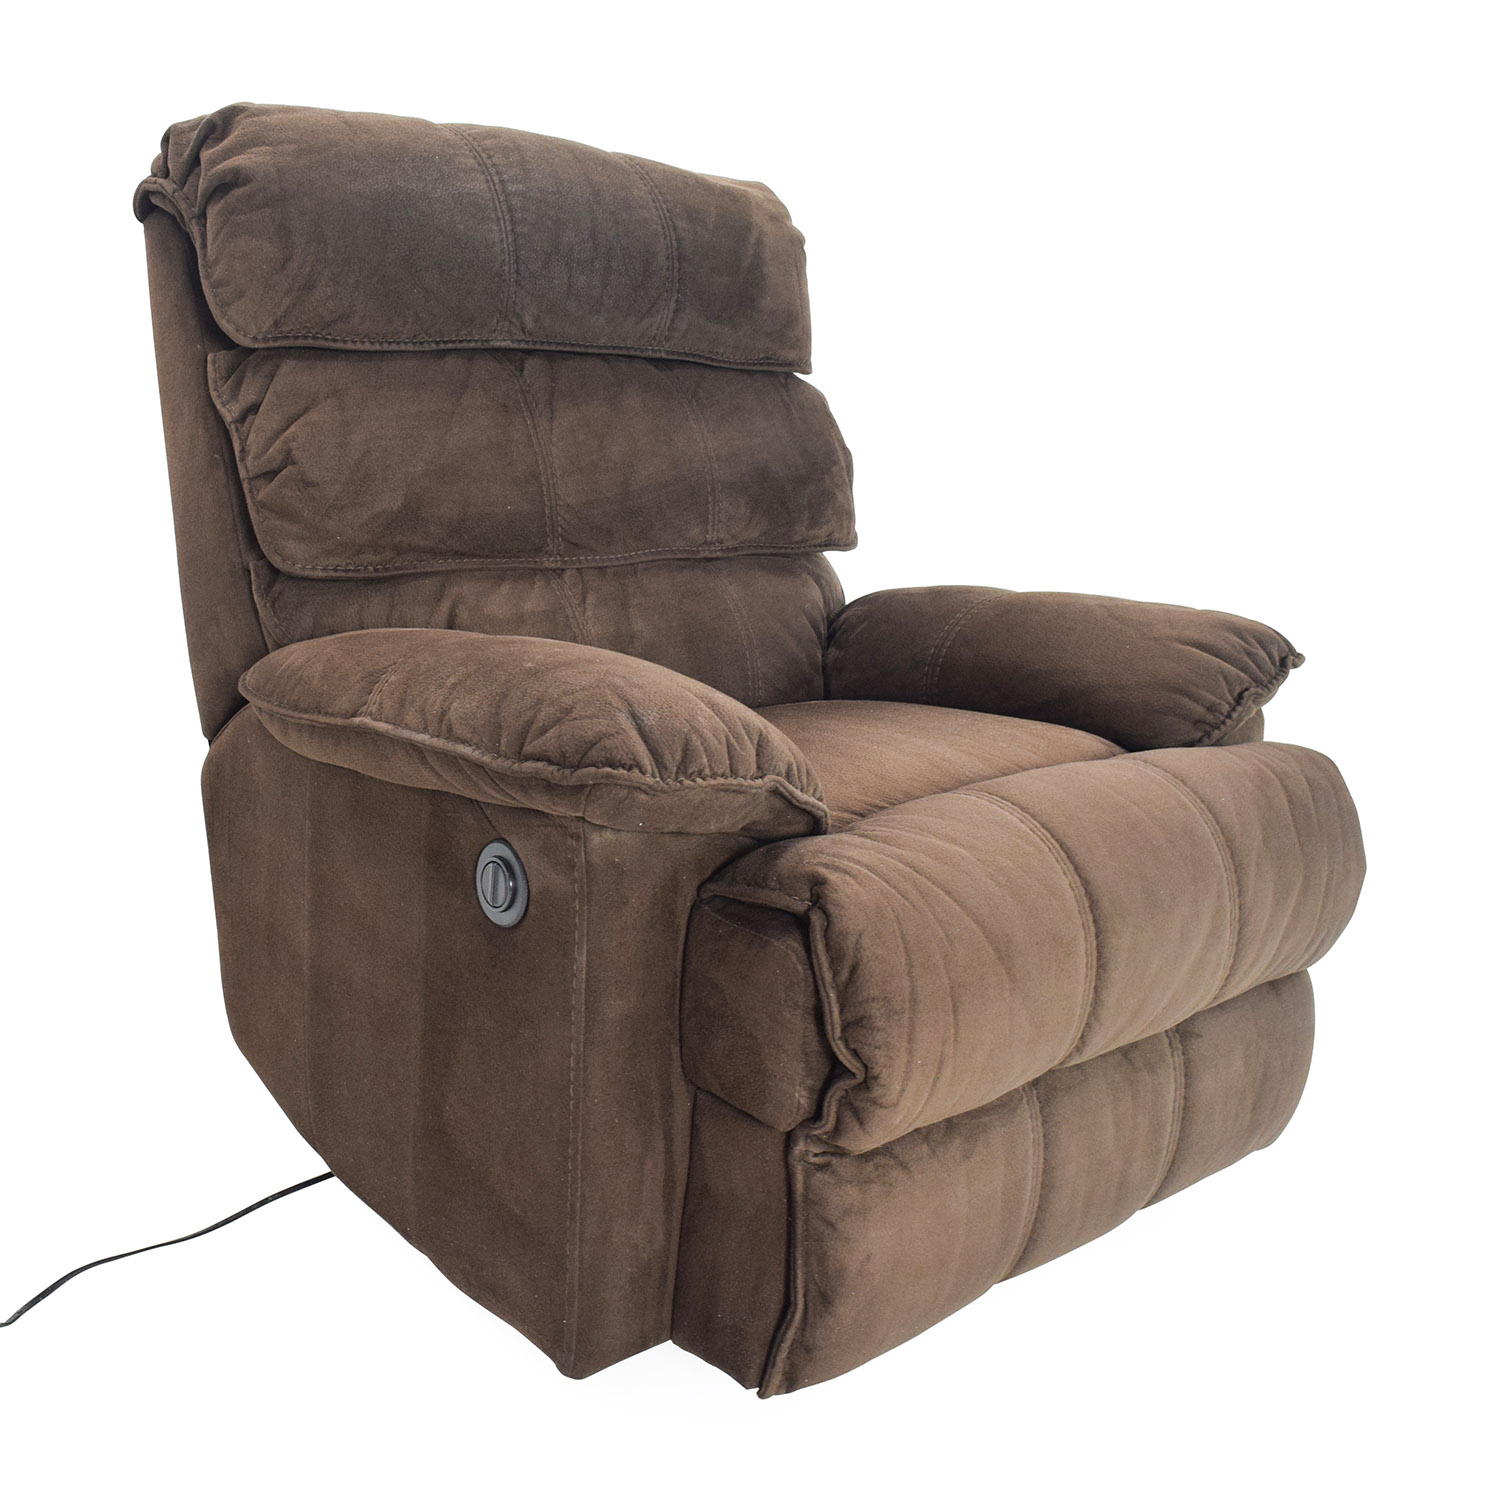 69% OFF Macy s Macy s Recliner Chair Chairs